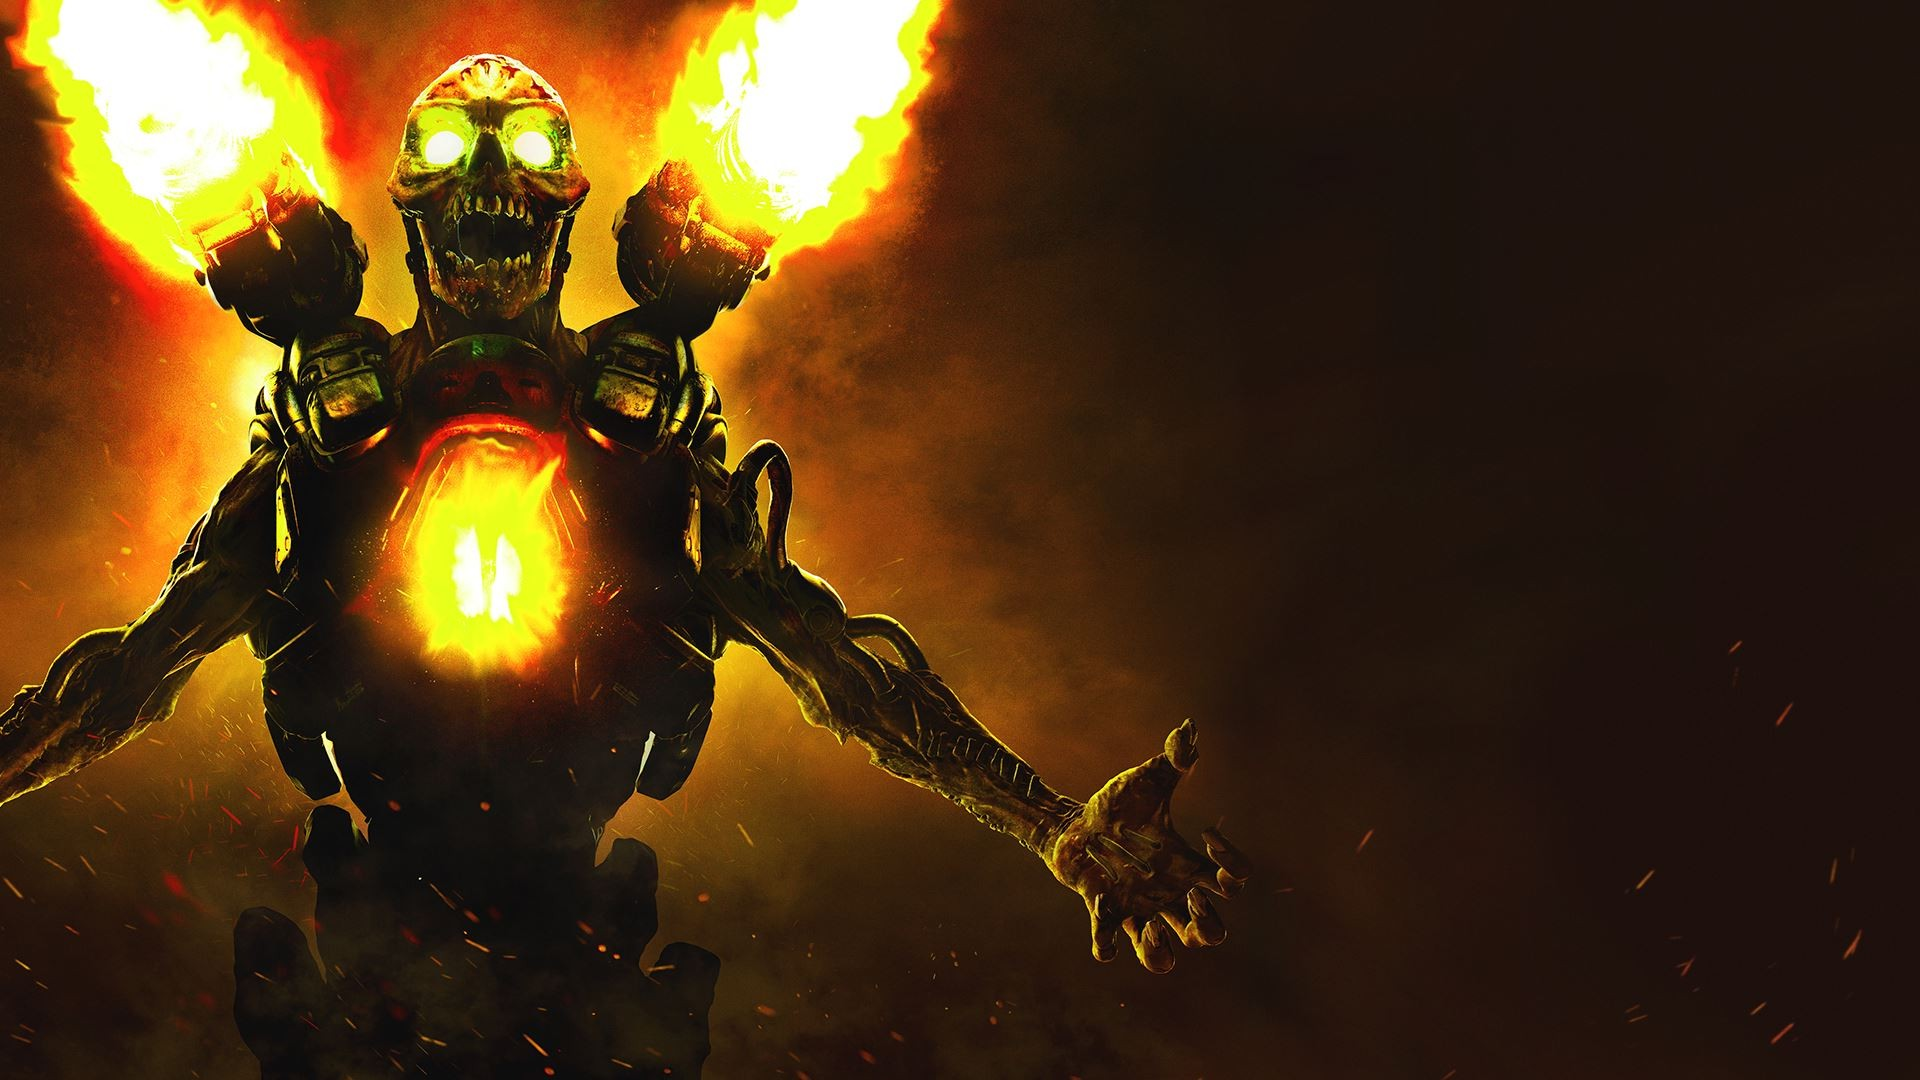 doom 2016 video game hd games 4k wallpapers images